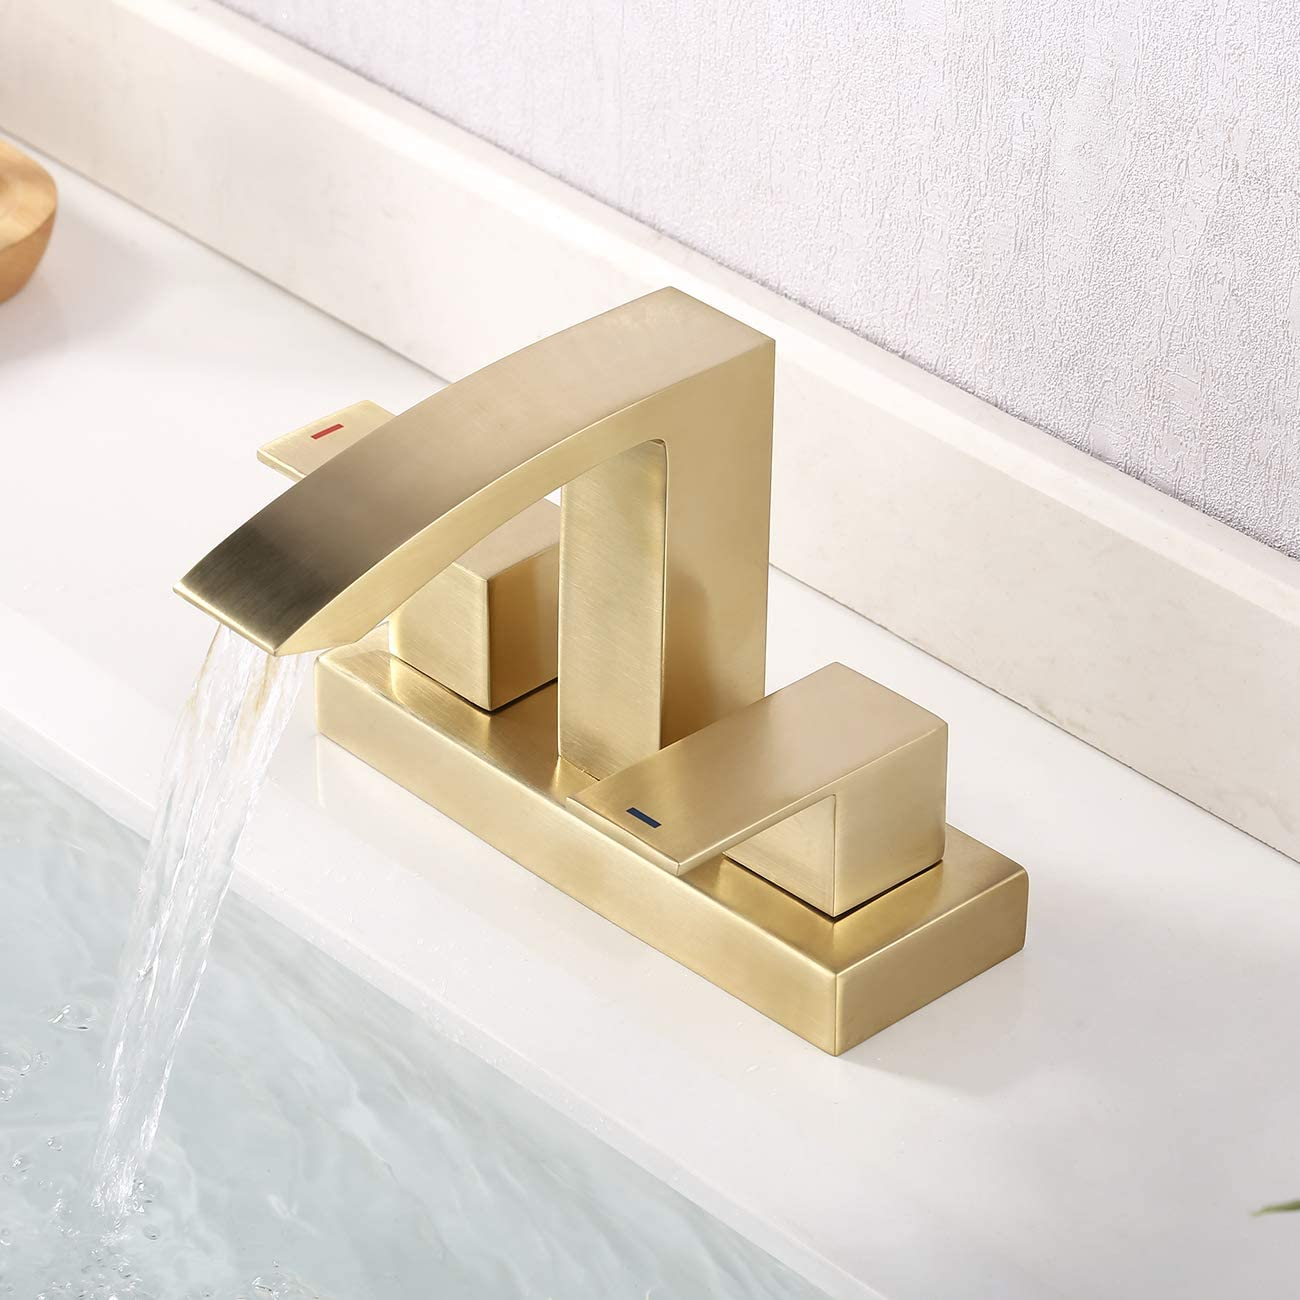 KES Brushed Brass Bathroom Sink Faucet Two Handles 3 Hole 4 Inches Centerset Modern Vanity Lavatory Faucet Lead Free Brass Chrome Sink Drain and Supply Hoses Included , L4101LF-BZ